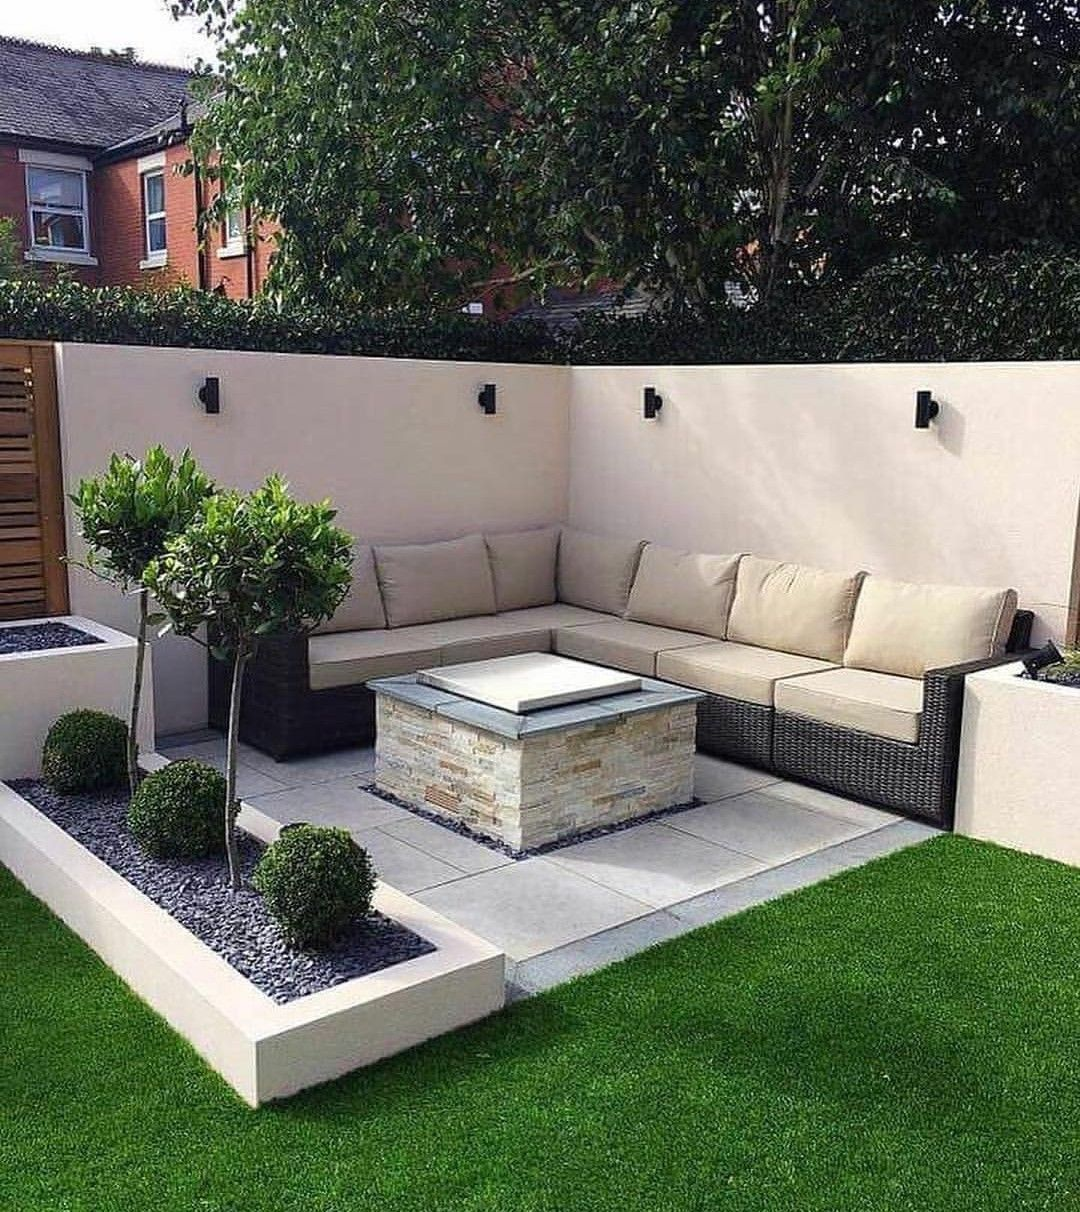 Outdoorgardendecorideas Small Backyard Landscaping Simple Garden Designs Backyard Seating